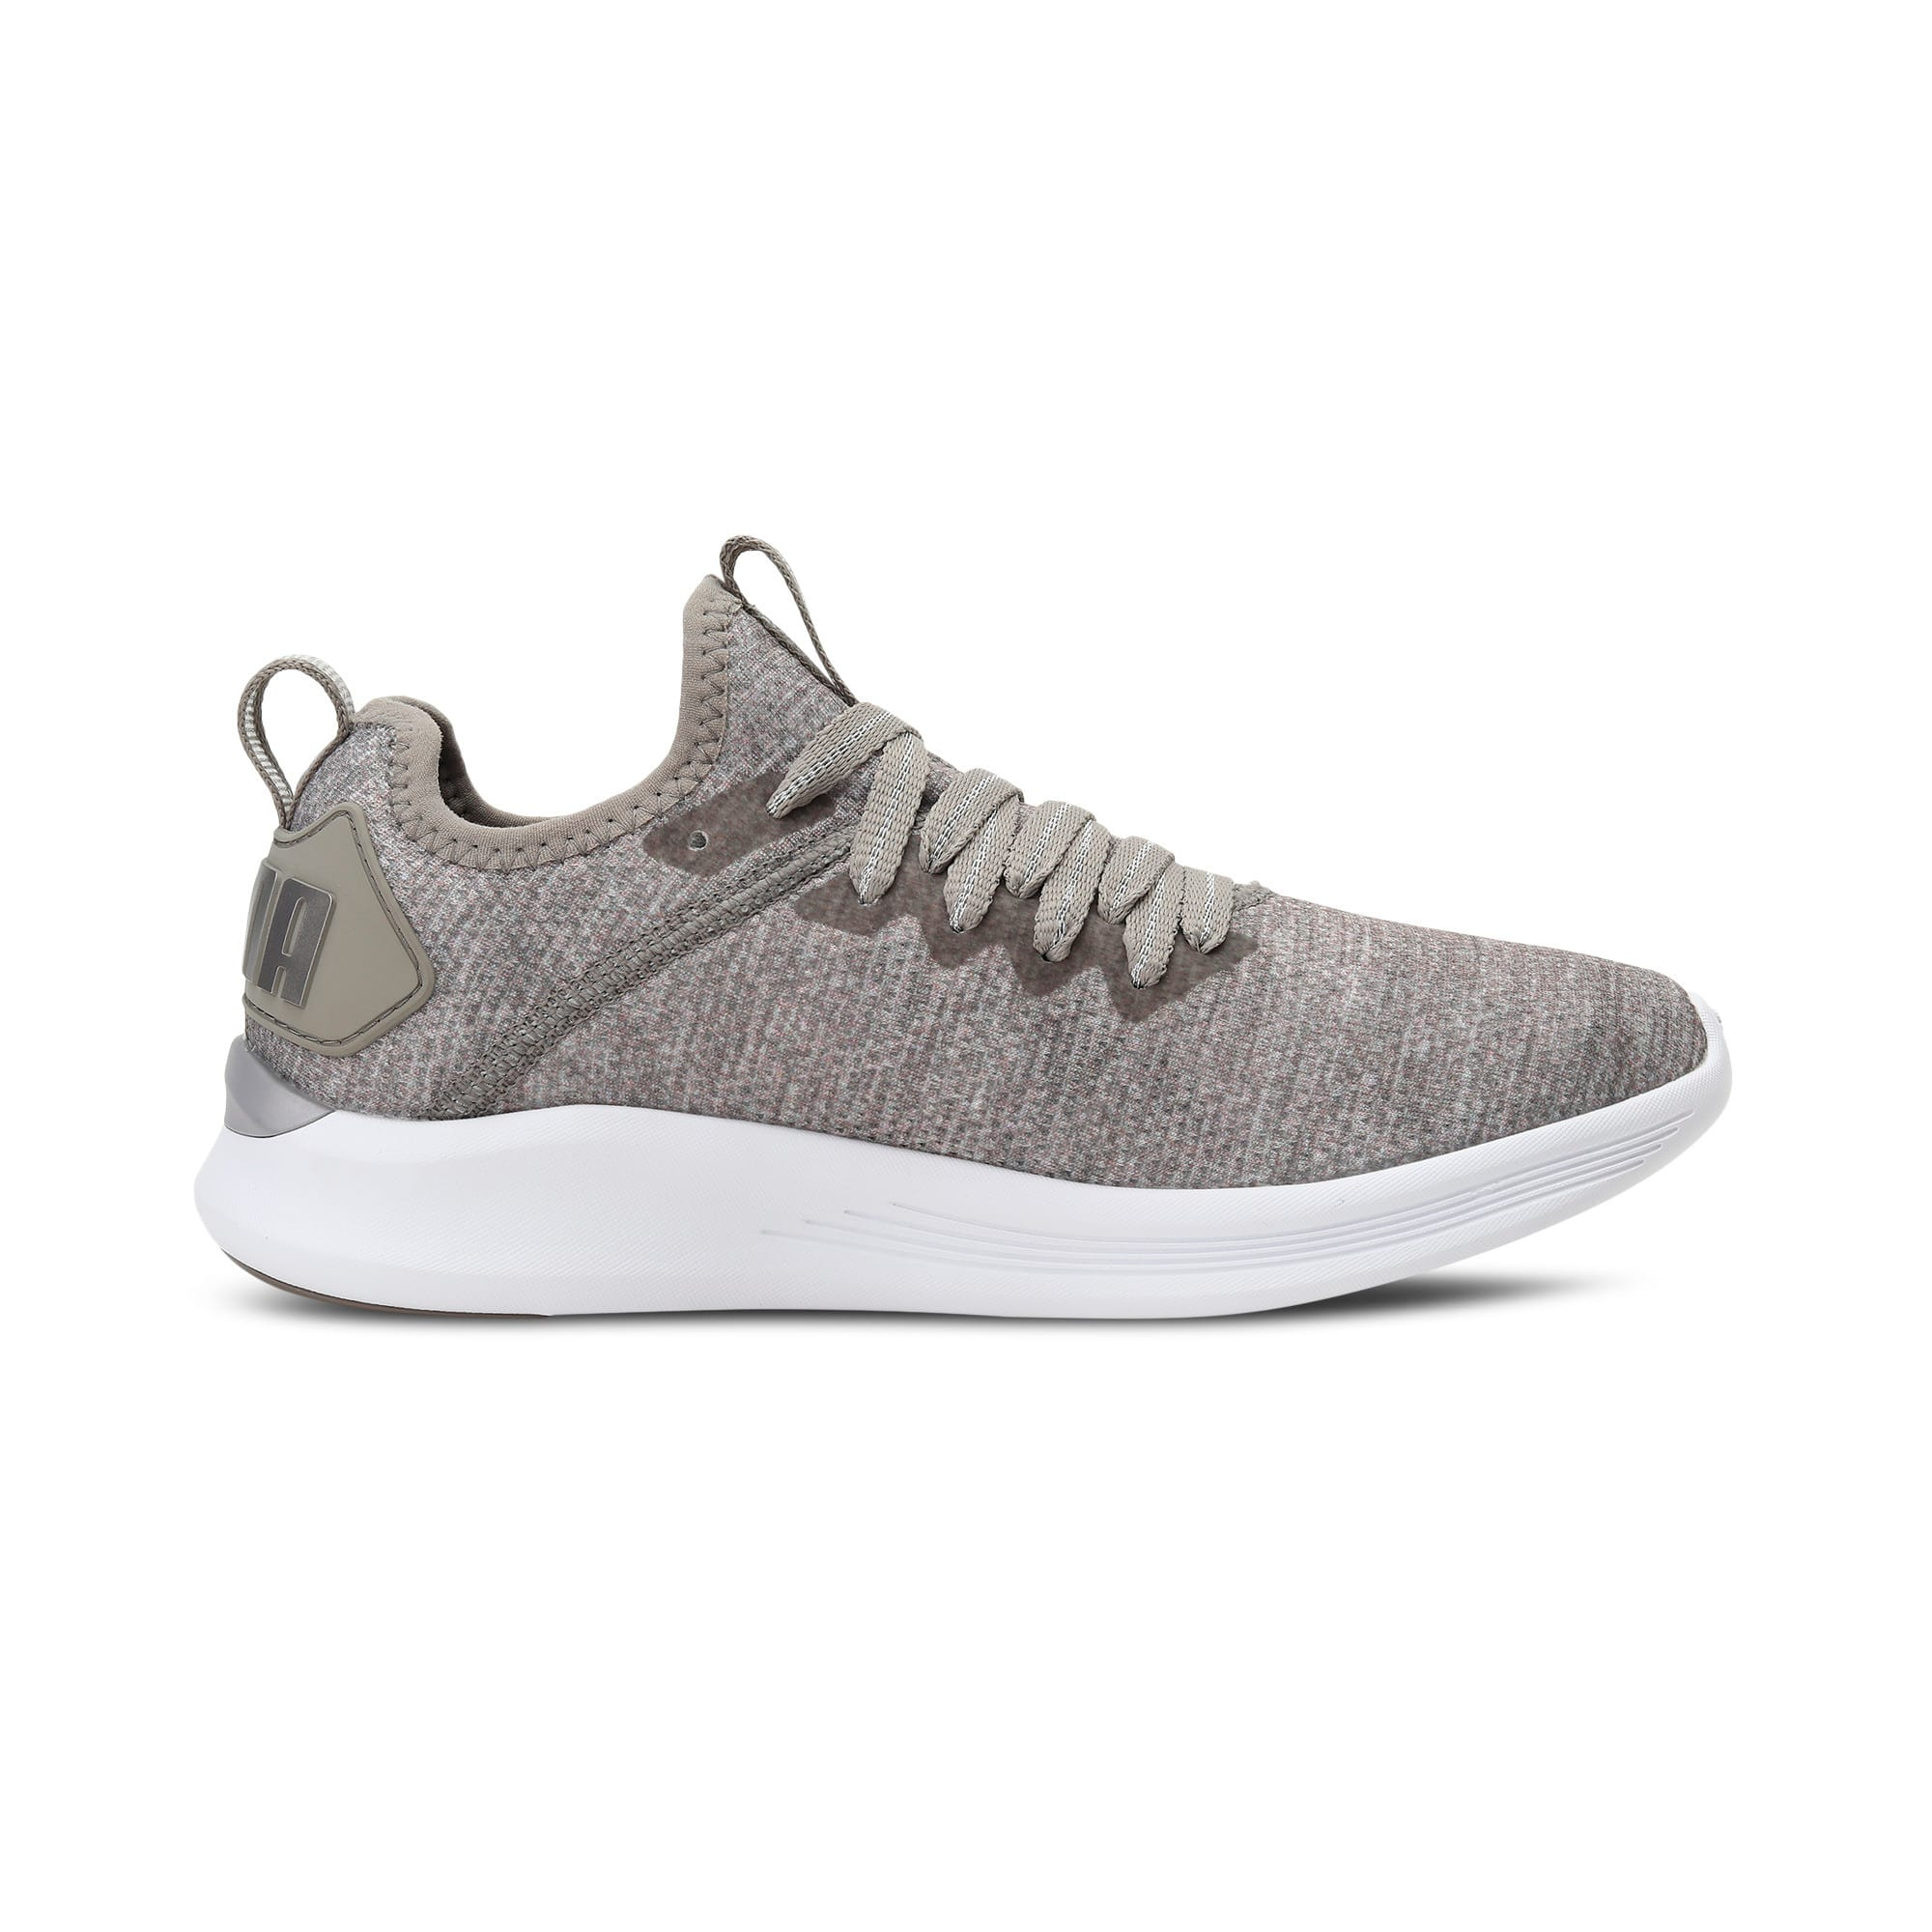 Thumbnail 5 of Flash IGNITE evoKNIT En Pointe Women's Trainers, Rock Ridge-Metallic Beige, medium-IND